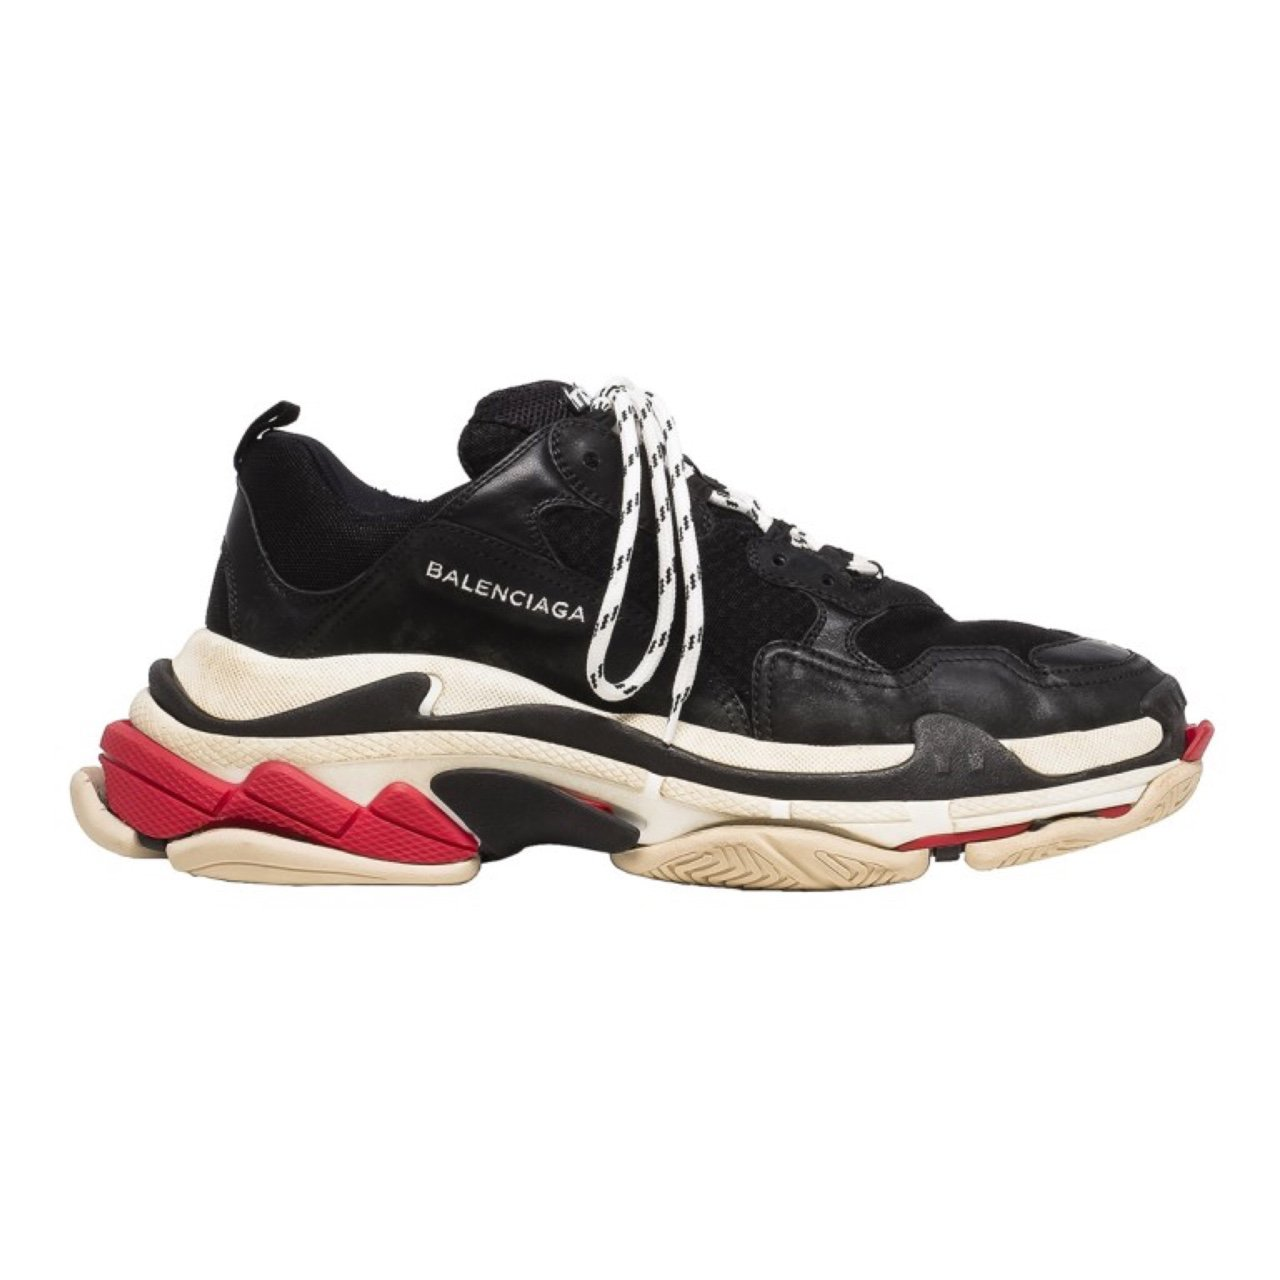 4183d8a3b676 Balenciaga triple S trainers   sneakers in black Red and 43 - Depop